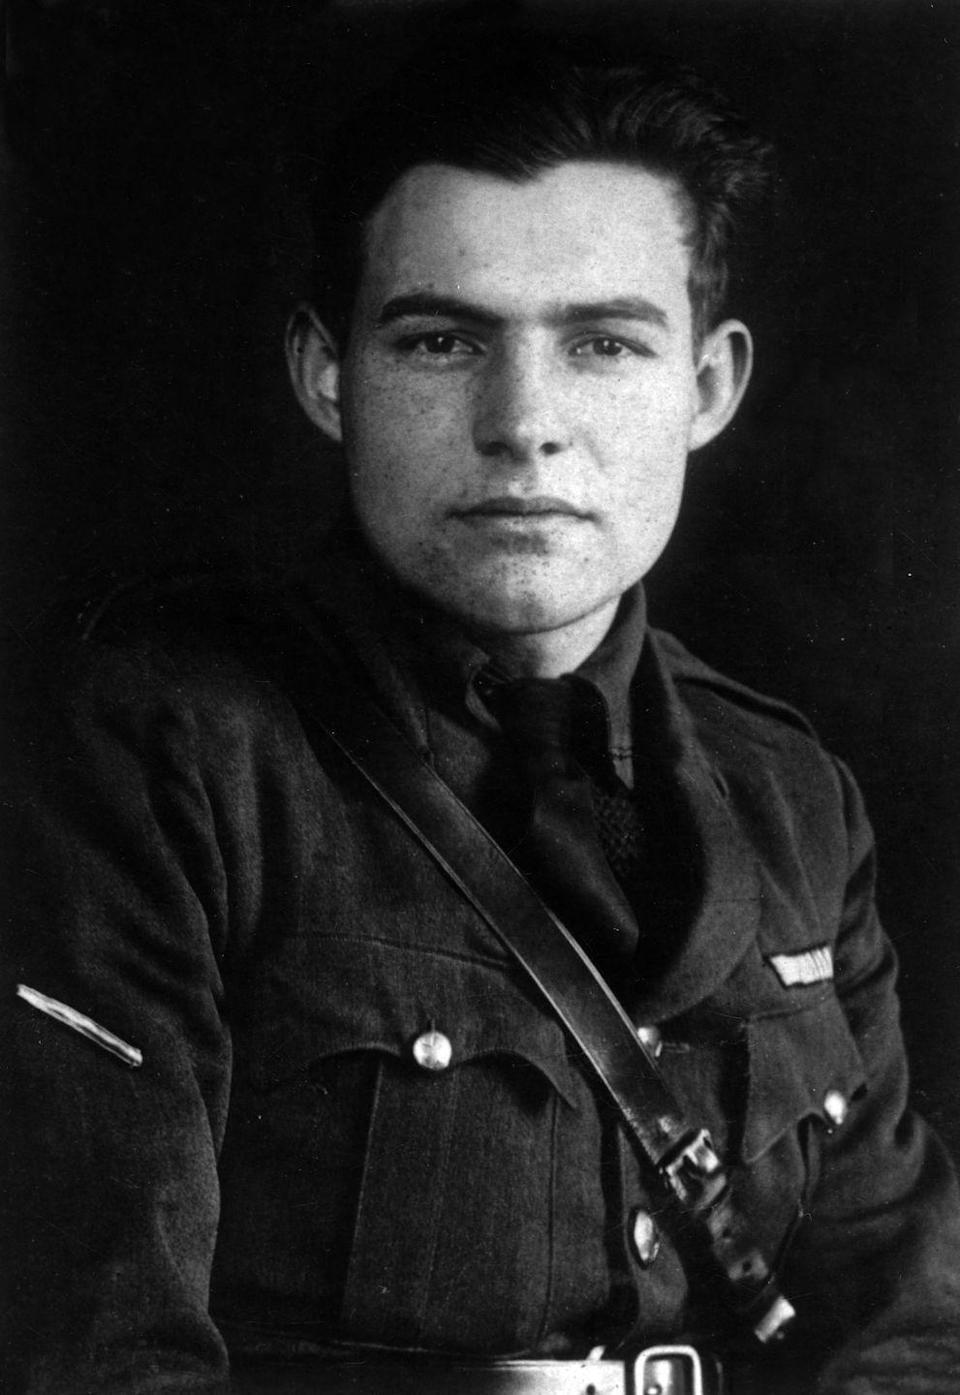 <p>As World War I raged, Ernest Hemingway joined the Red Cross. The day he arrived, a munitions factory exploded and he had to carry mutilated bodies to a makeshift morgue; the horrors of war inspired many of his later novels. His name was number 37 that year. John, William, and James continued their streak — as did Mary, Helen, and Dorothy.</p>